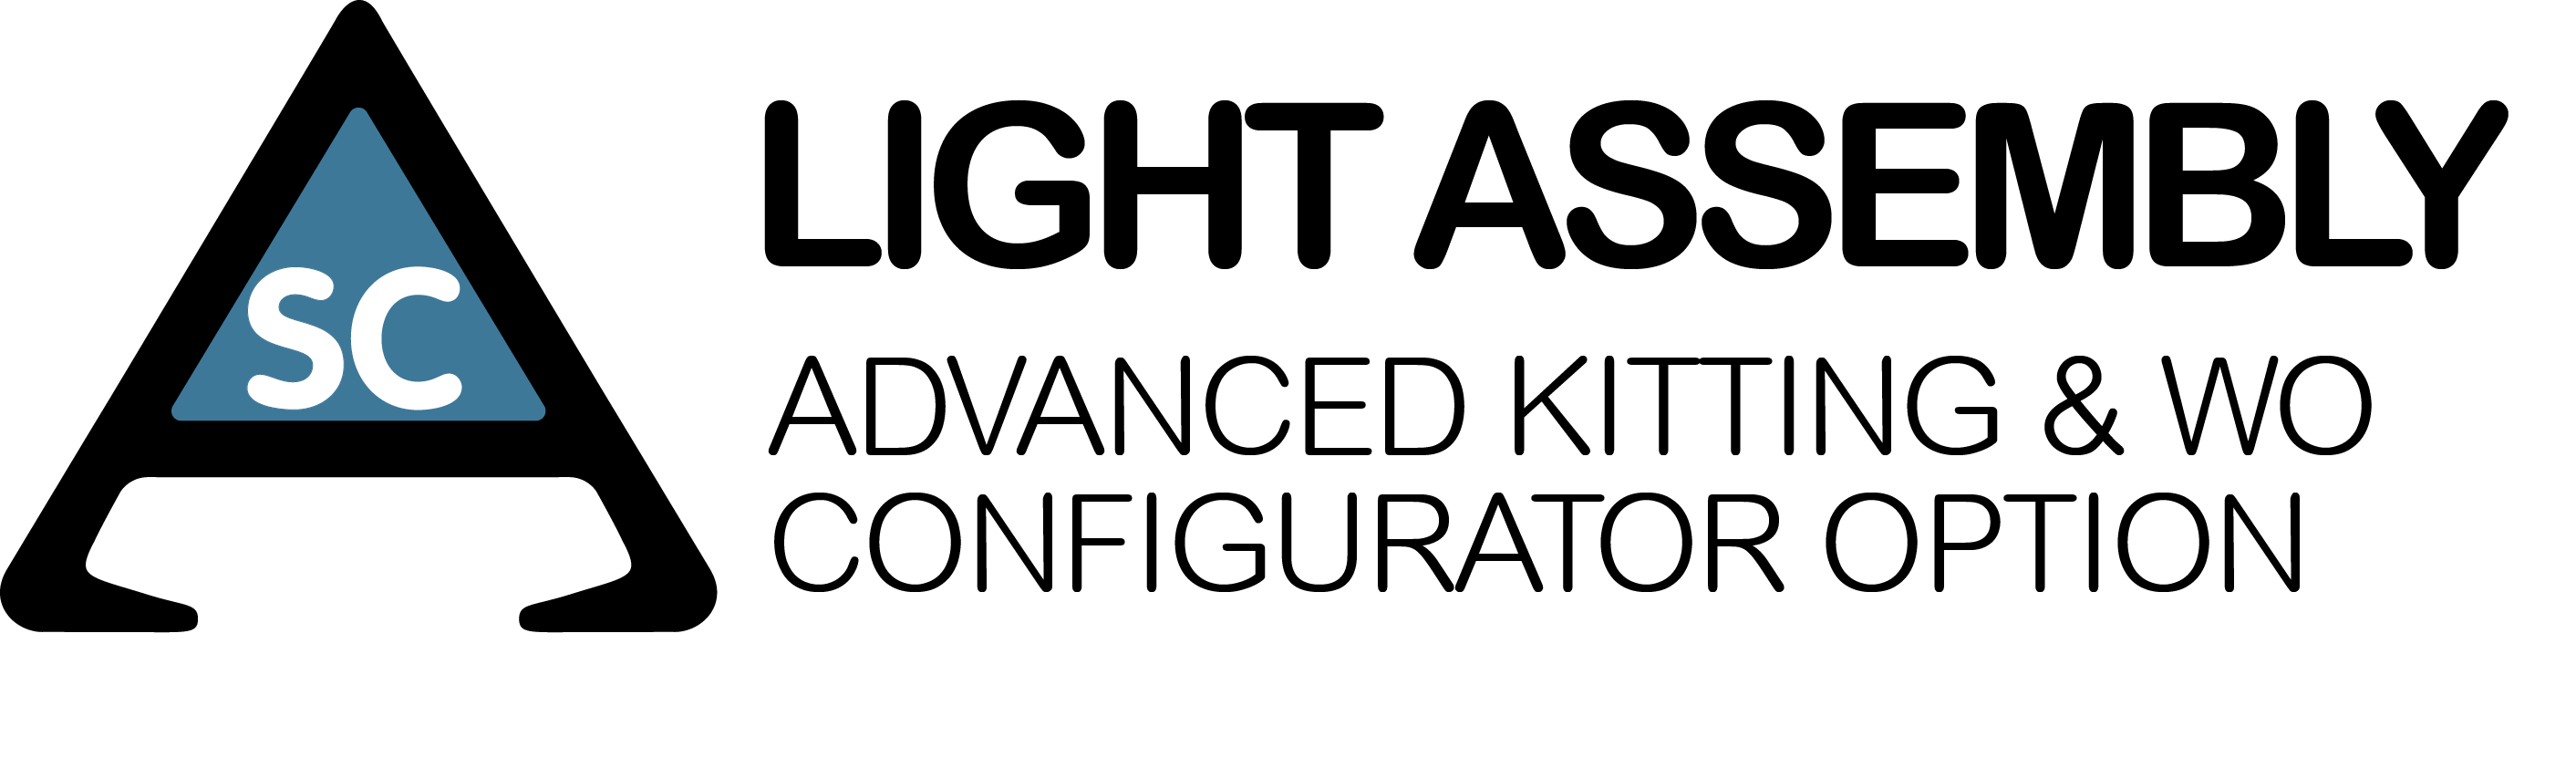 Light Assembly MFG Module - Advanced Solutions and Consulting Co